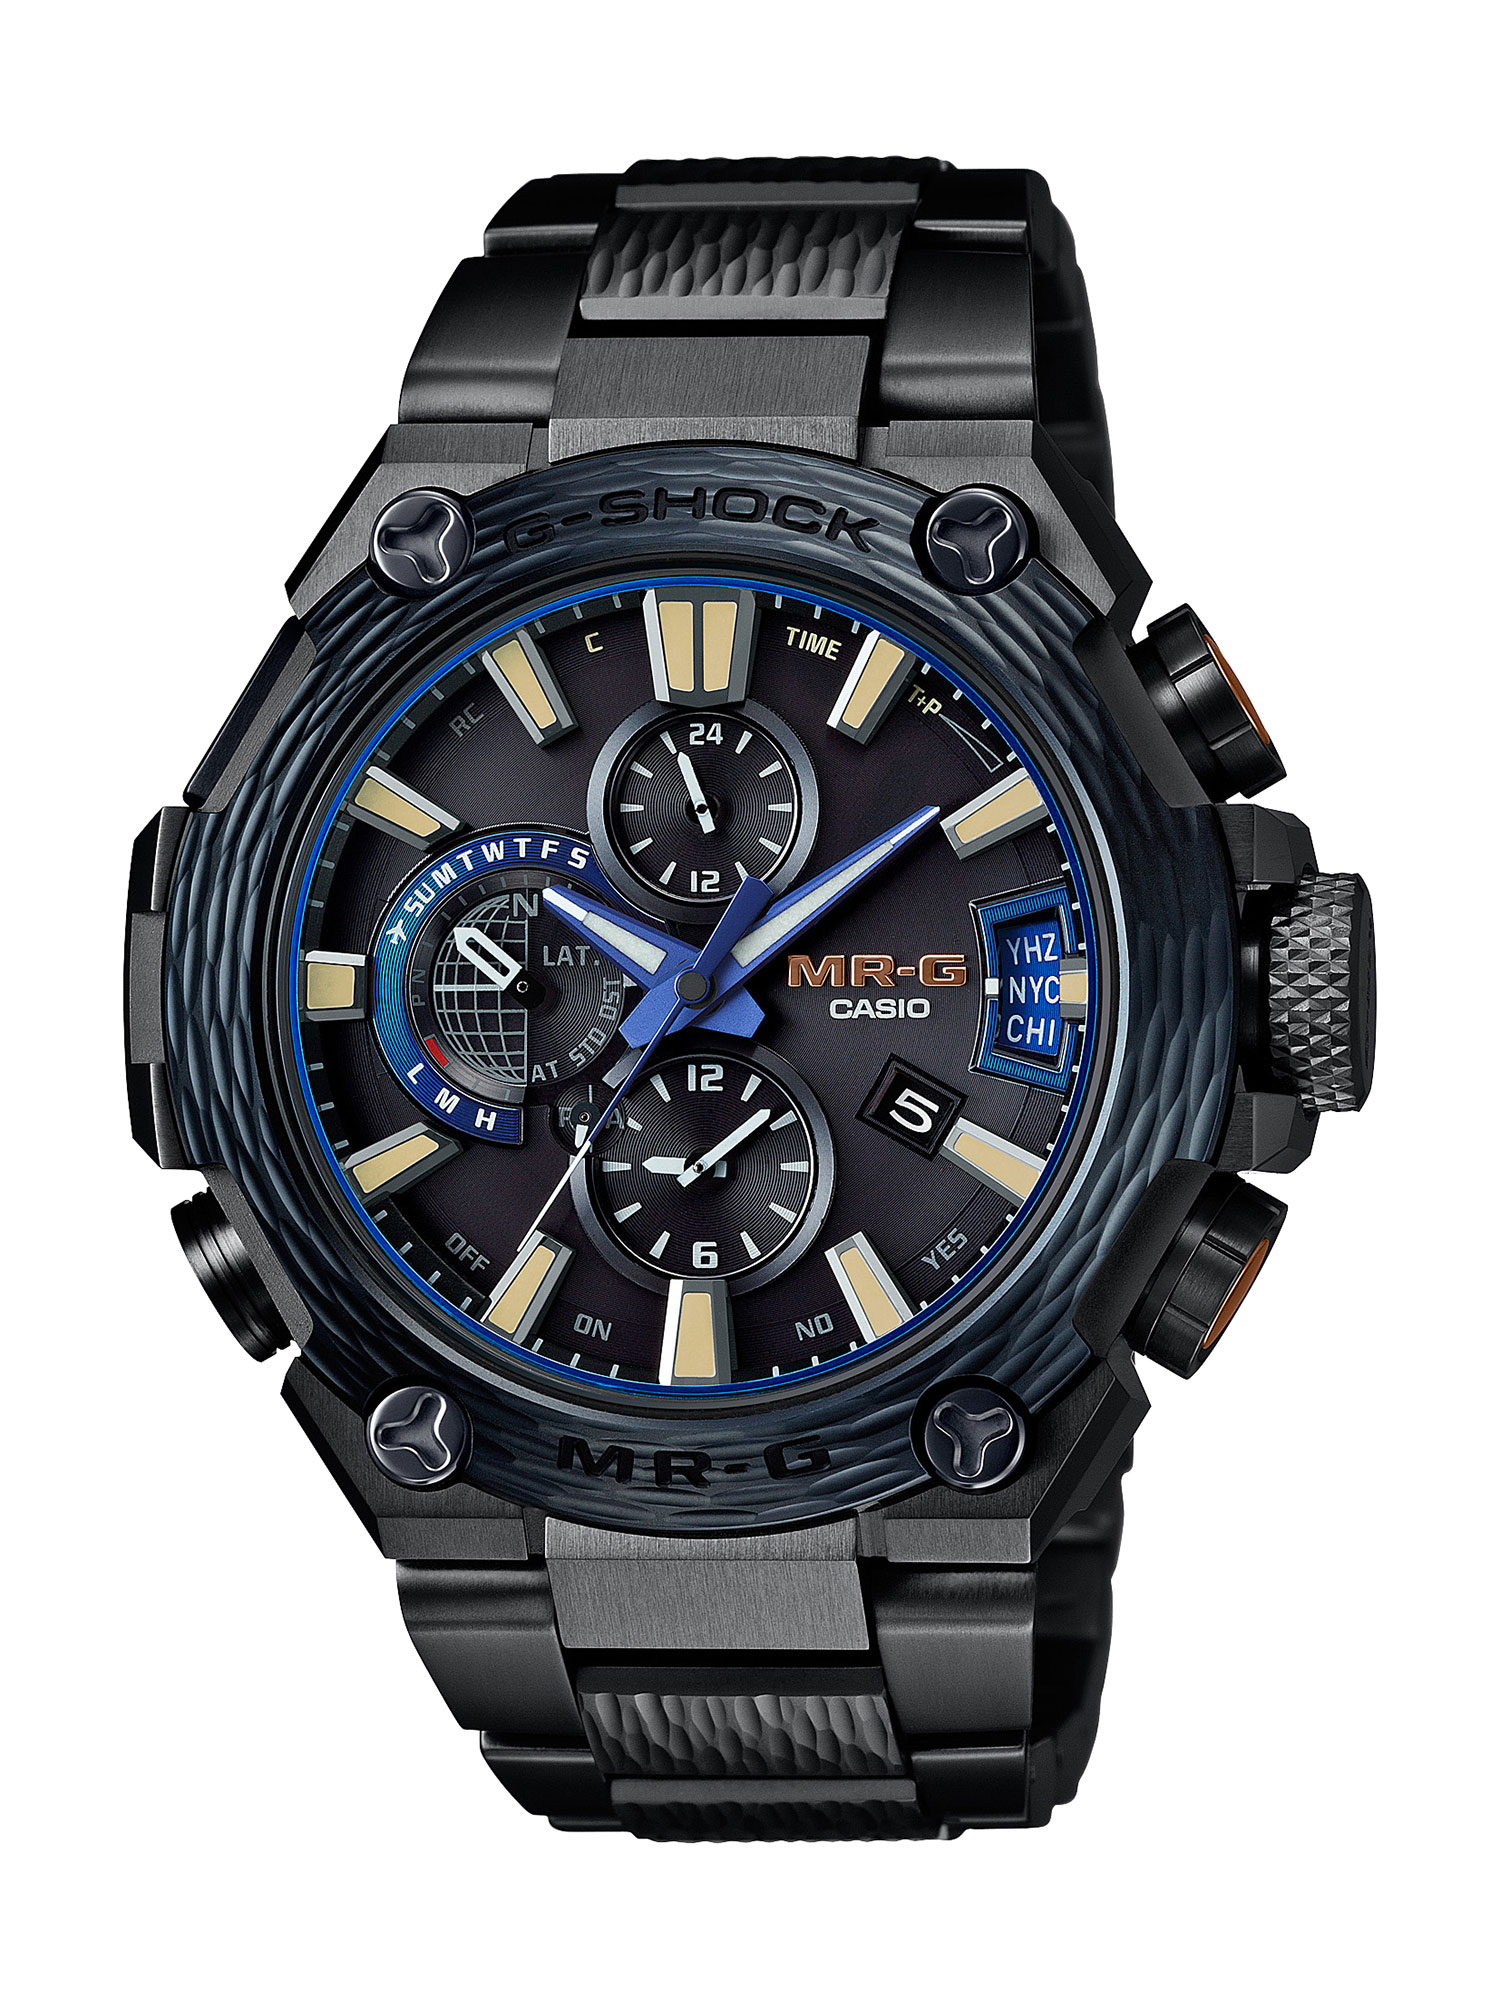 CASIO G-SHOCK Releases Limited Edition Indigo Finish G-SHOCK